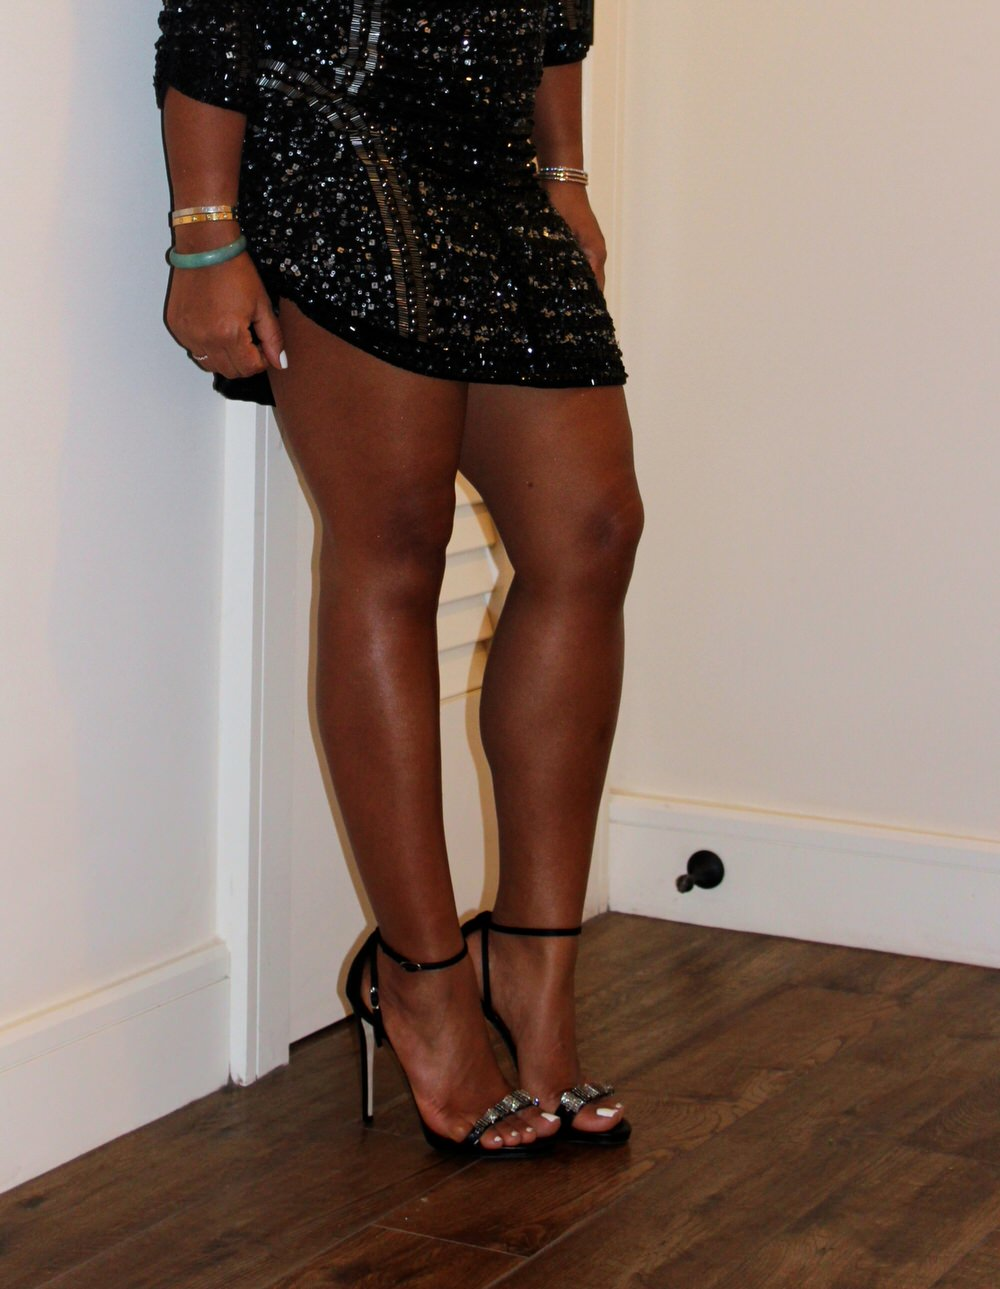 New Years Eve Dress - Parker Dress, Dolce & Gabbana Bag, Giuseppe Zanotti Heels